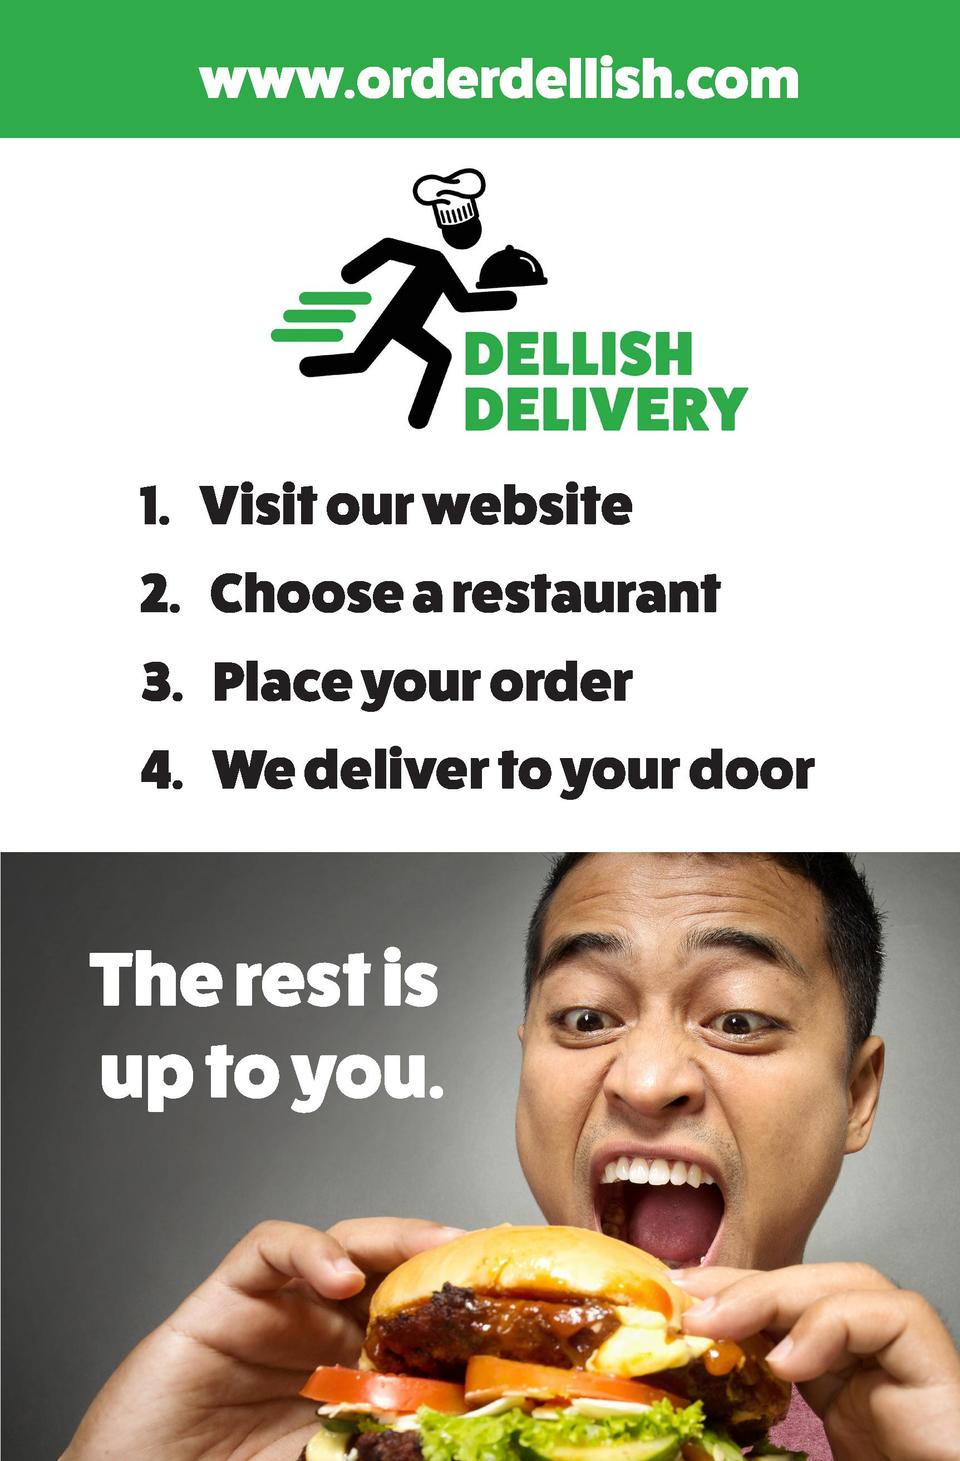 www.orderdellish.com  1. Visit our website 2. Choose a restaurant 3. Place your order 4. We deliver to your door  The rest...